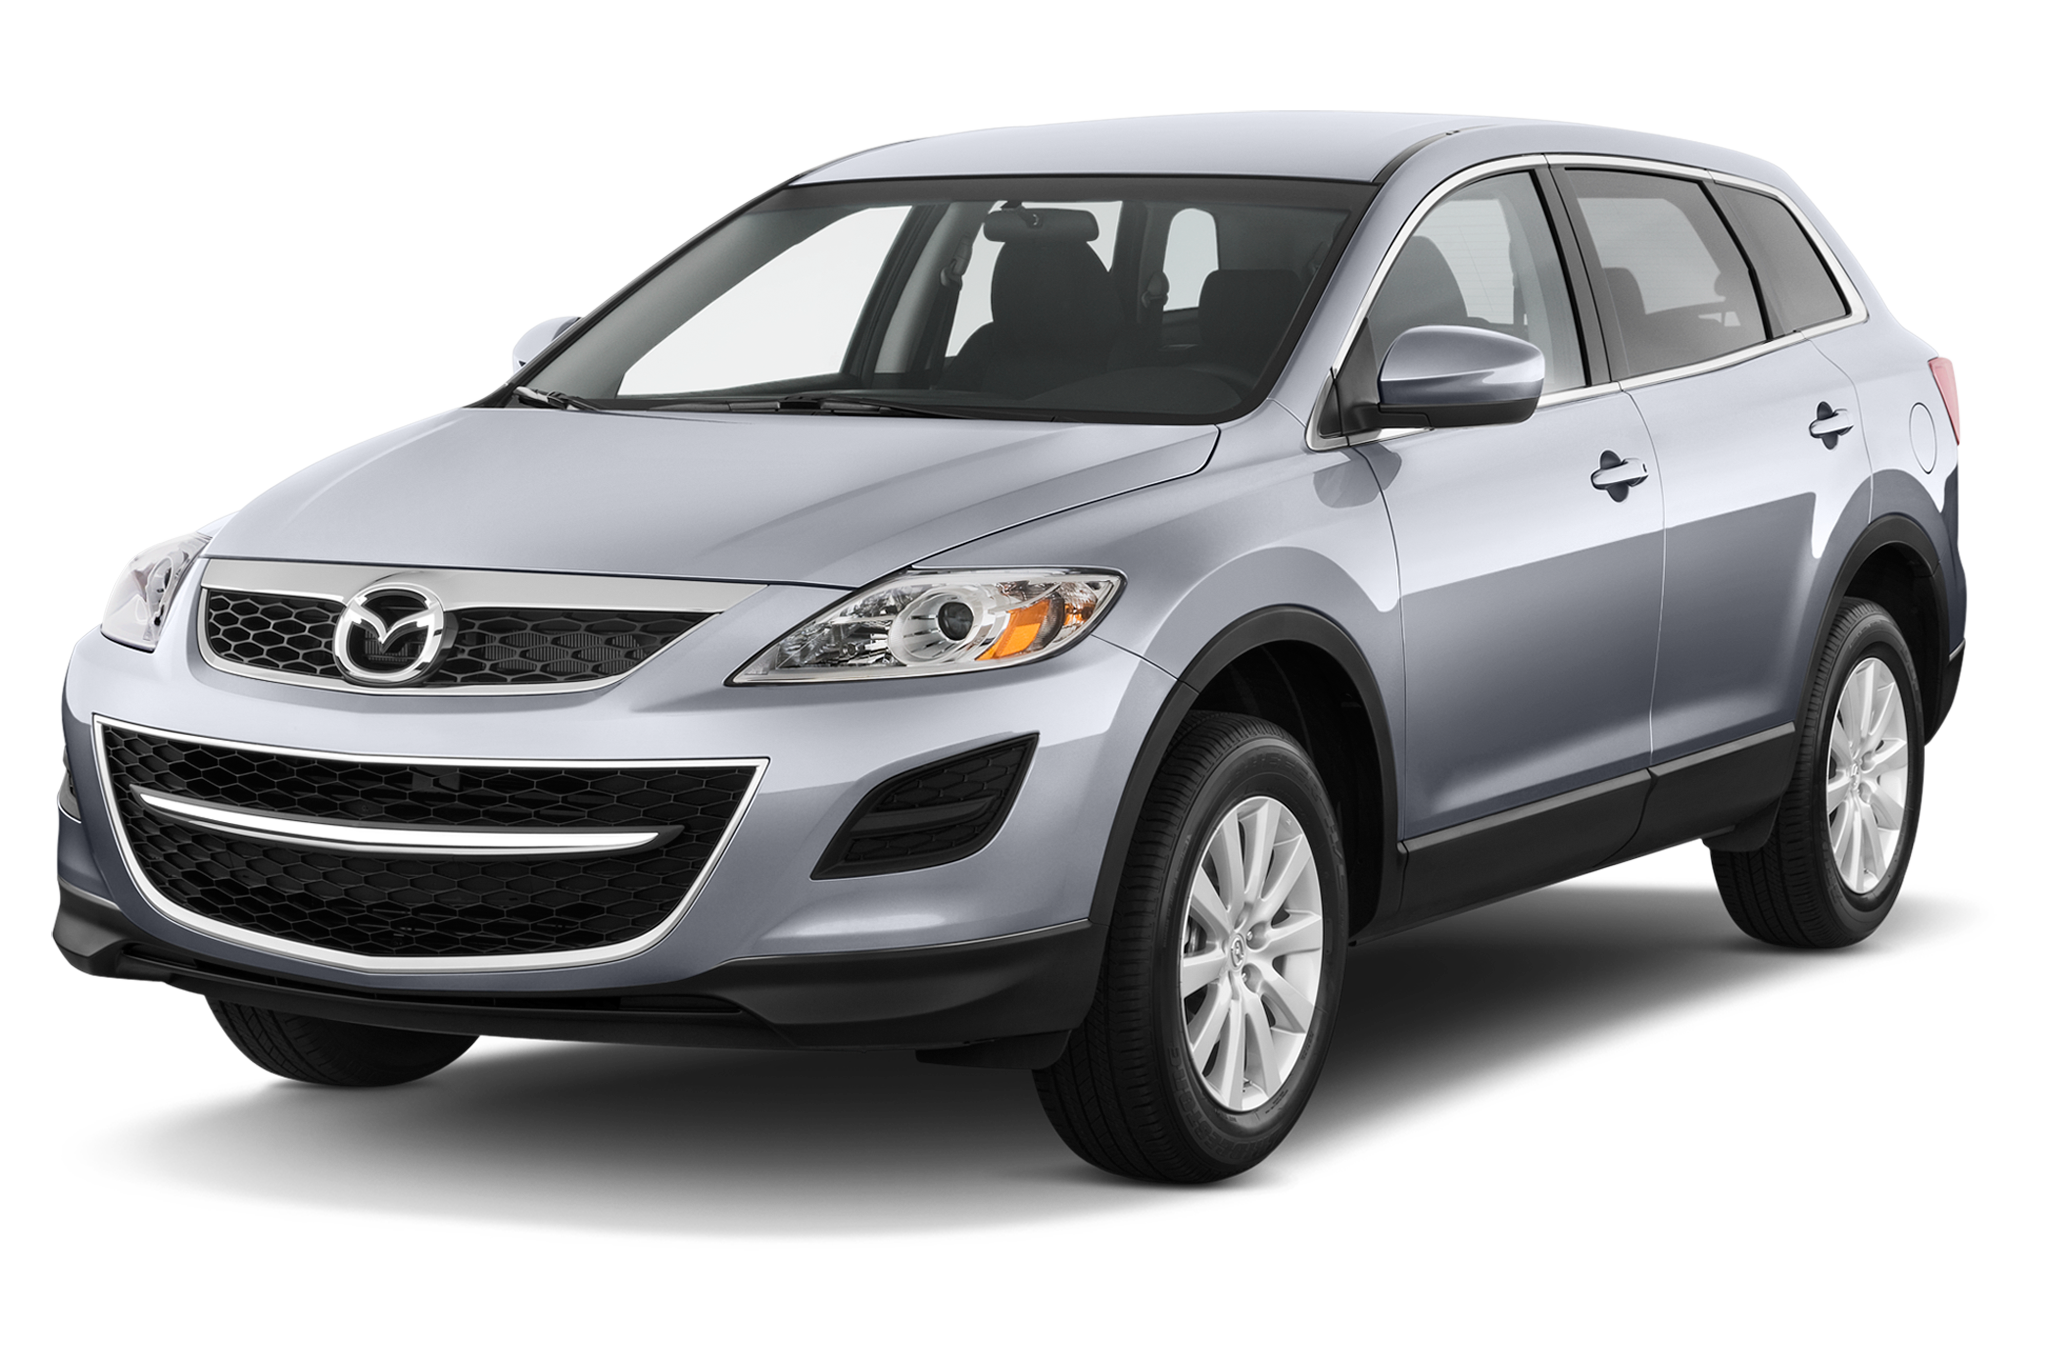 2010 mazda cx 9 grand touring mazda crossover suv review. Black Bedroom Furniture Sets. Home Design Ideas